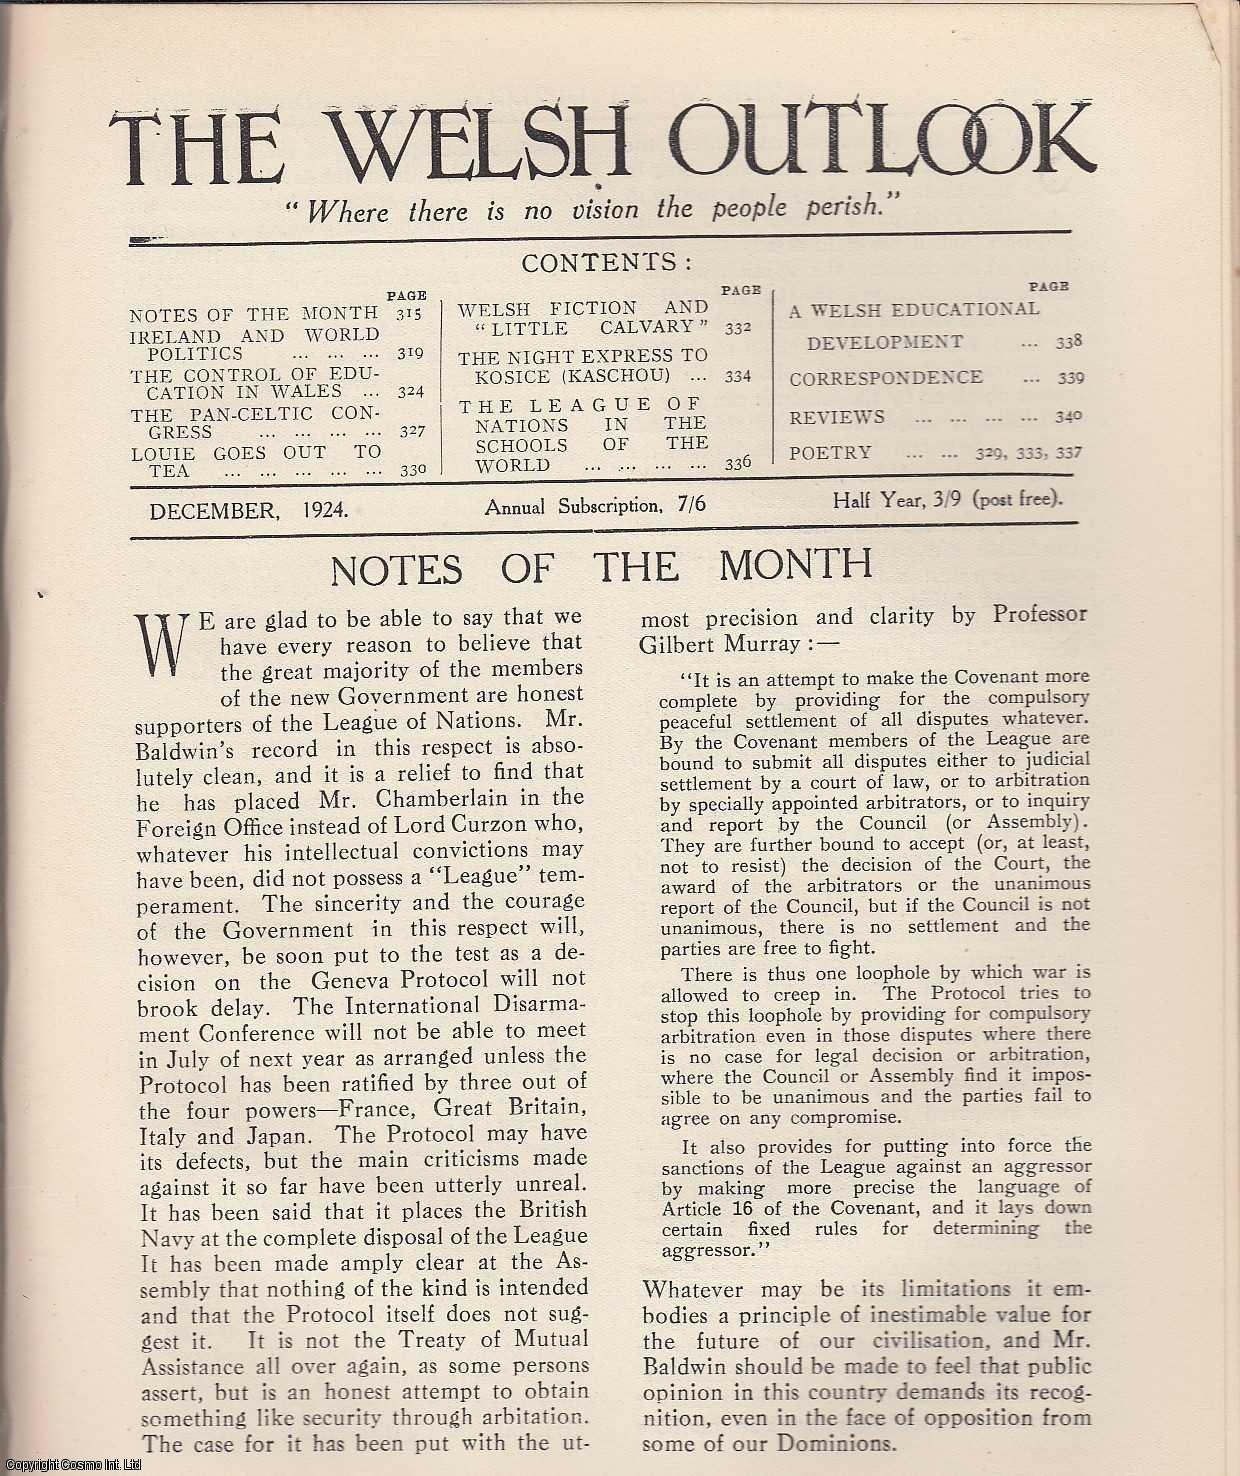 The Welsh Outlook. A Monthly Journal of National Social Progress. December, 1924. Contains; Ireland and World Politics by G.M.Ll. Davies; The Control of Education in Wales by J.C. Davies; The Pan-Celtic Congress by A.O. Roberts; Louie Goes Out to Tea by Vaughan Thomas; Welsh Fiction and Little Calvary by Idwal Jones; The Night Express to Kosice (Kaschau) by J. Emlyn Williams; The League of Nations in The Schools of The World by Gwilym Davies; A Welsh Educational Development by G.J. Griffith., Thomas Jones (Editor)